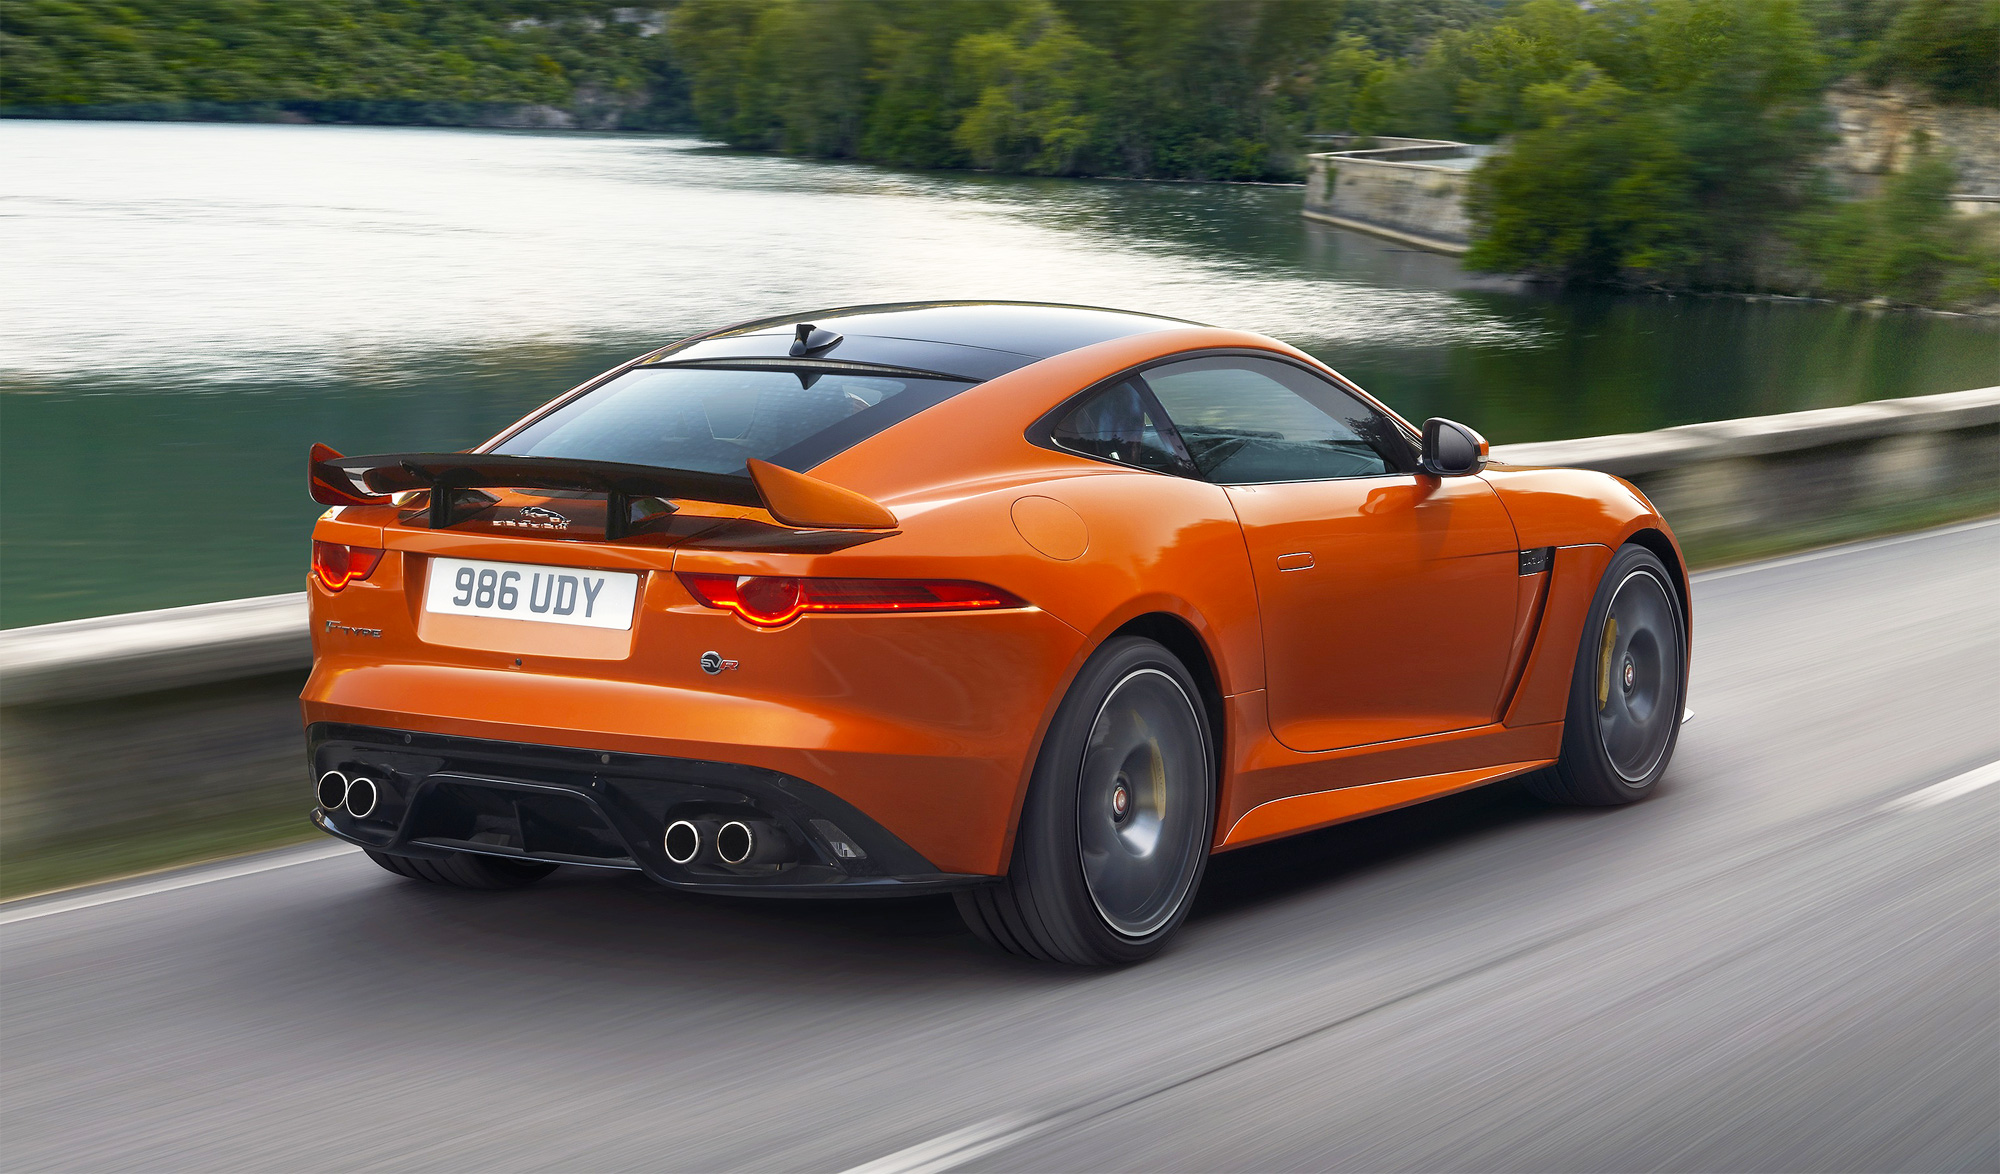 The SVR as a proposition is shaping up to be a promising one and we can't wait to test it